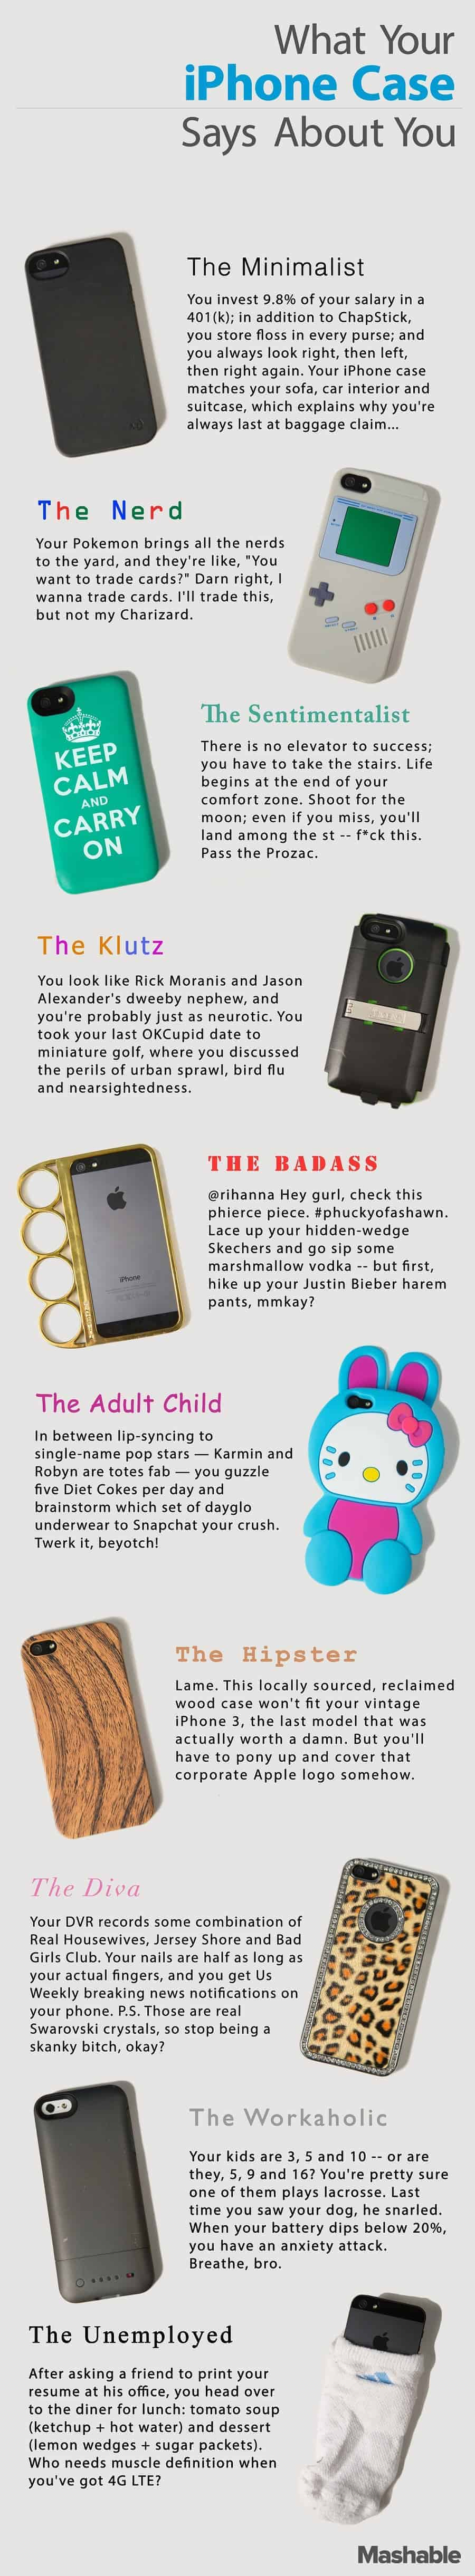 phone case says about you infographic